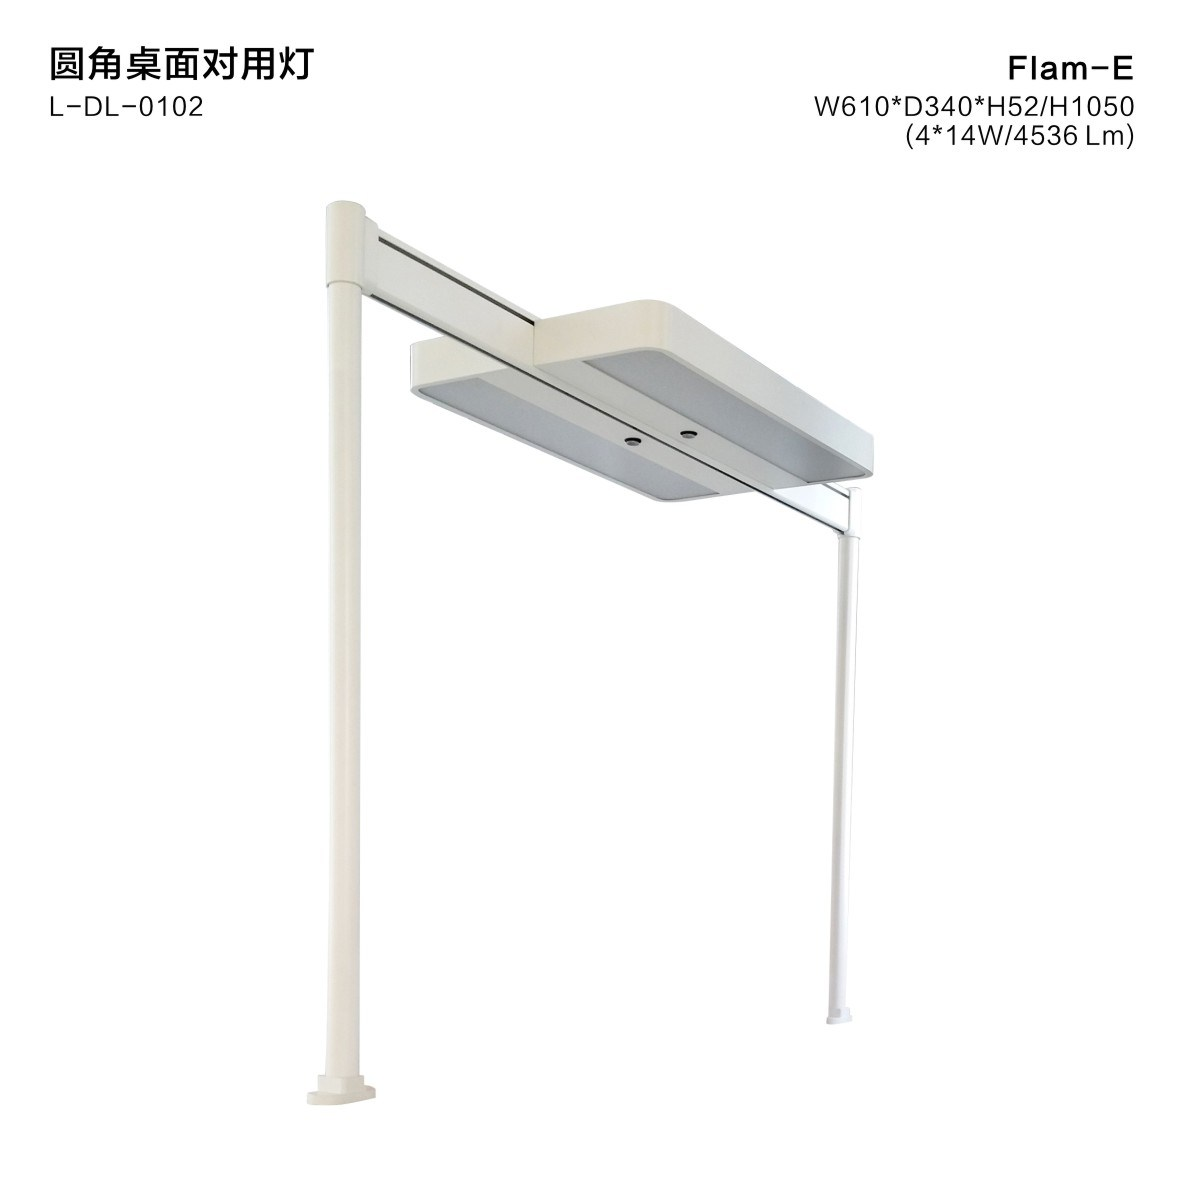 Uispair 10W 32V 4000k CRI 75-85 Extrusion Aluminum Alloy Table Desk Lamp